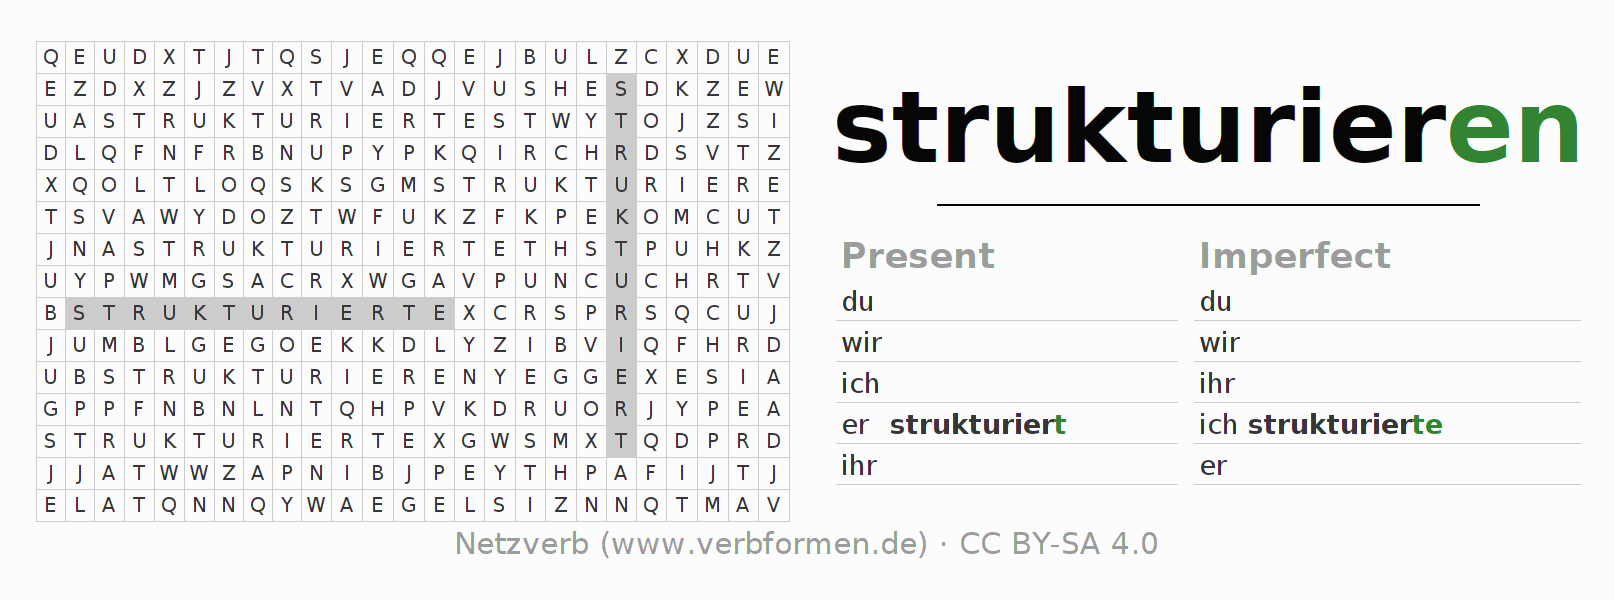 Word search puzzle for the conjugation of the verb strukturieren